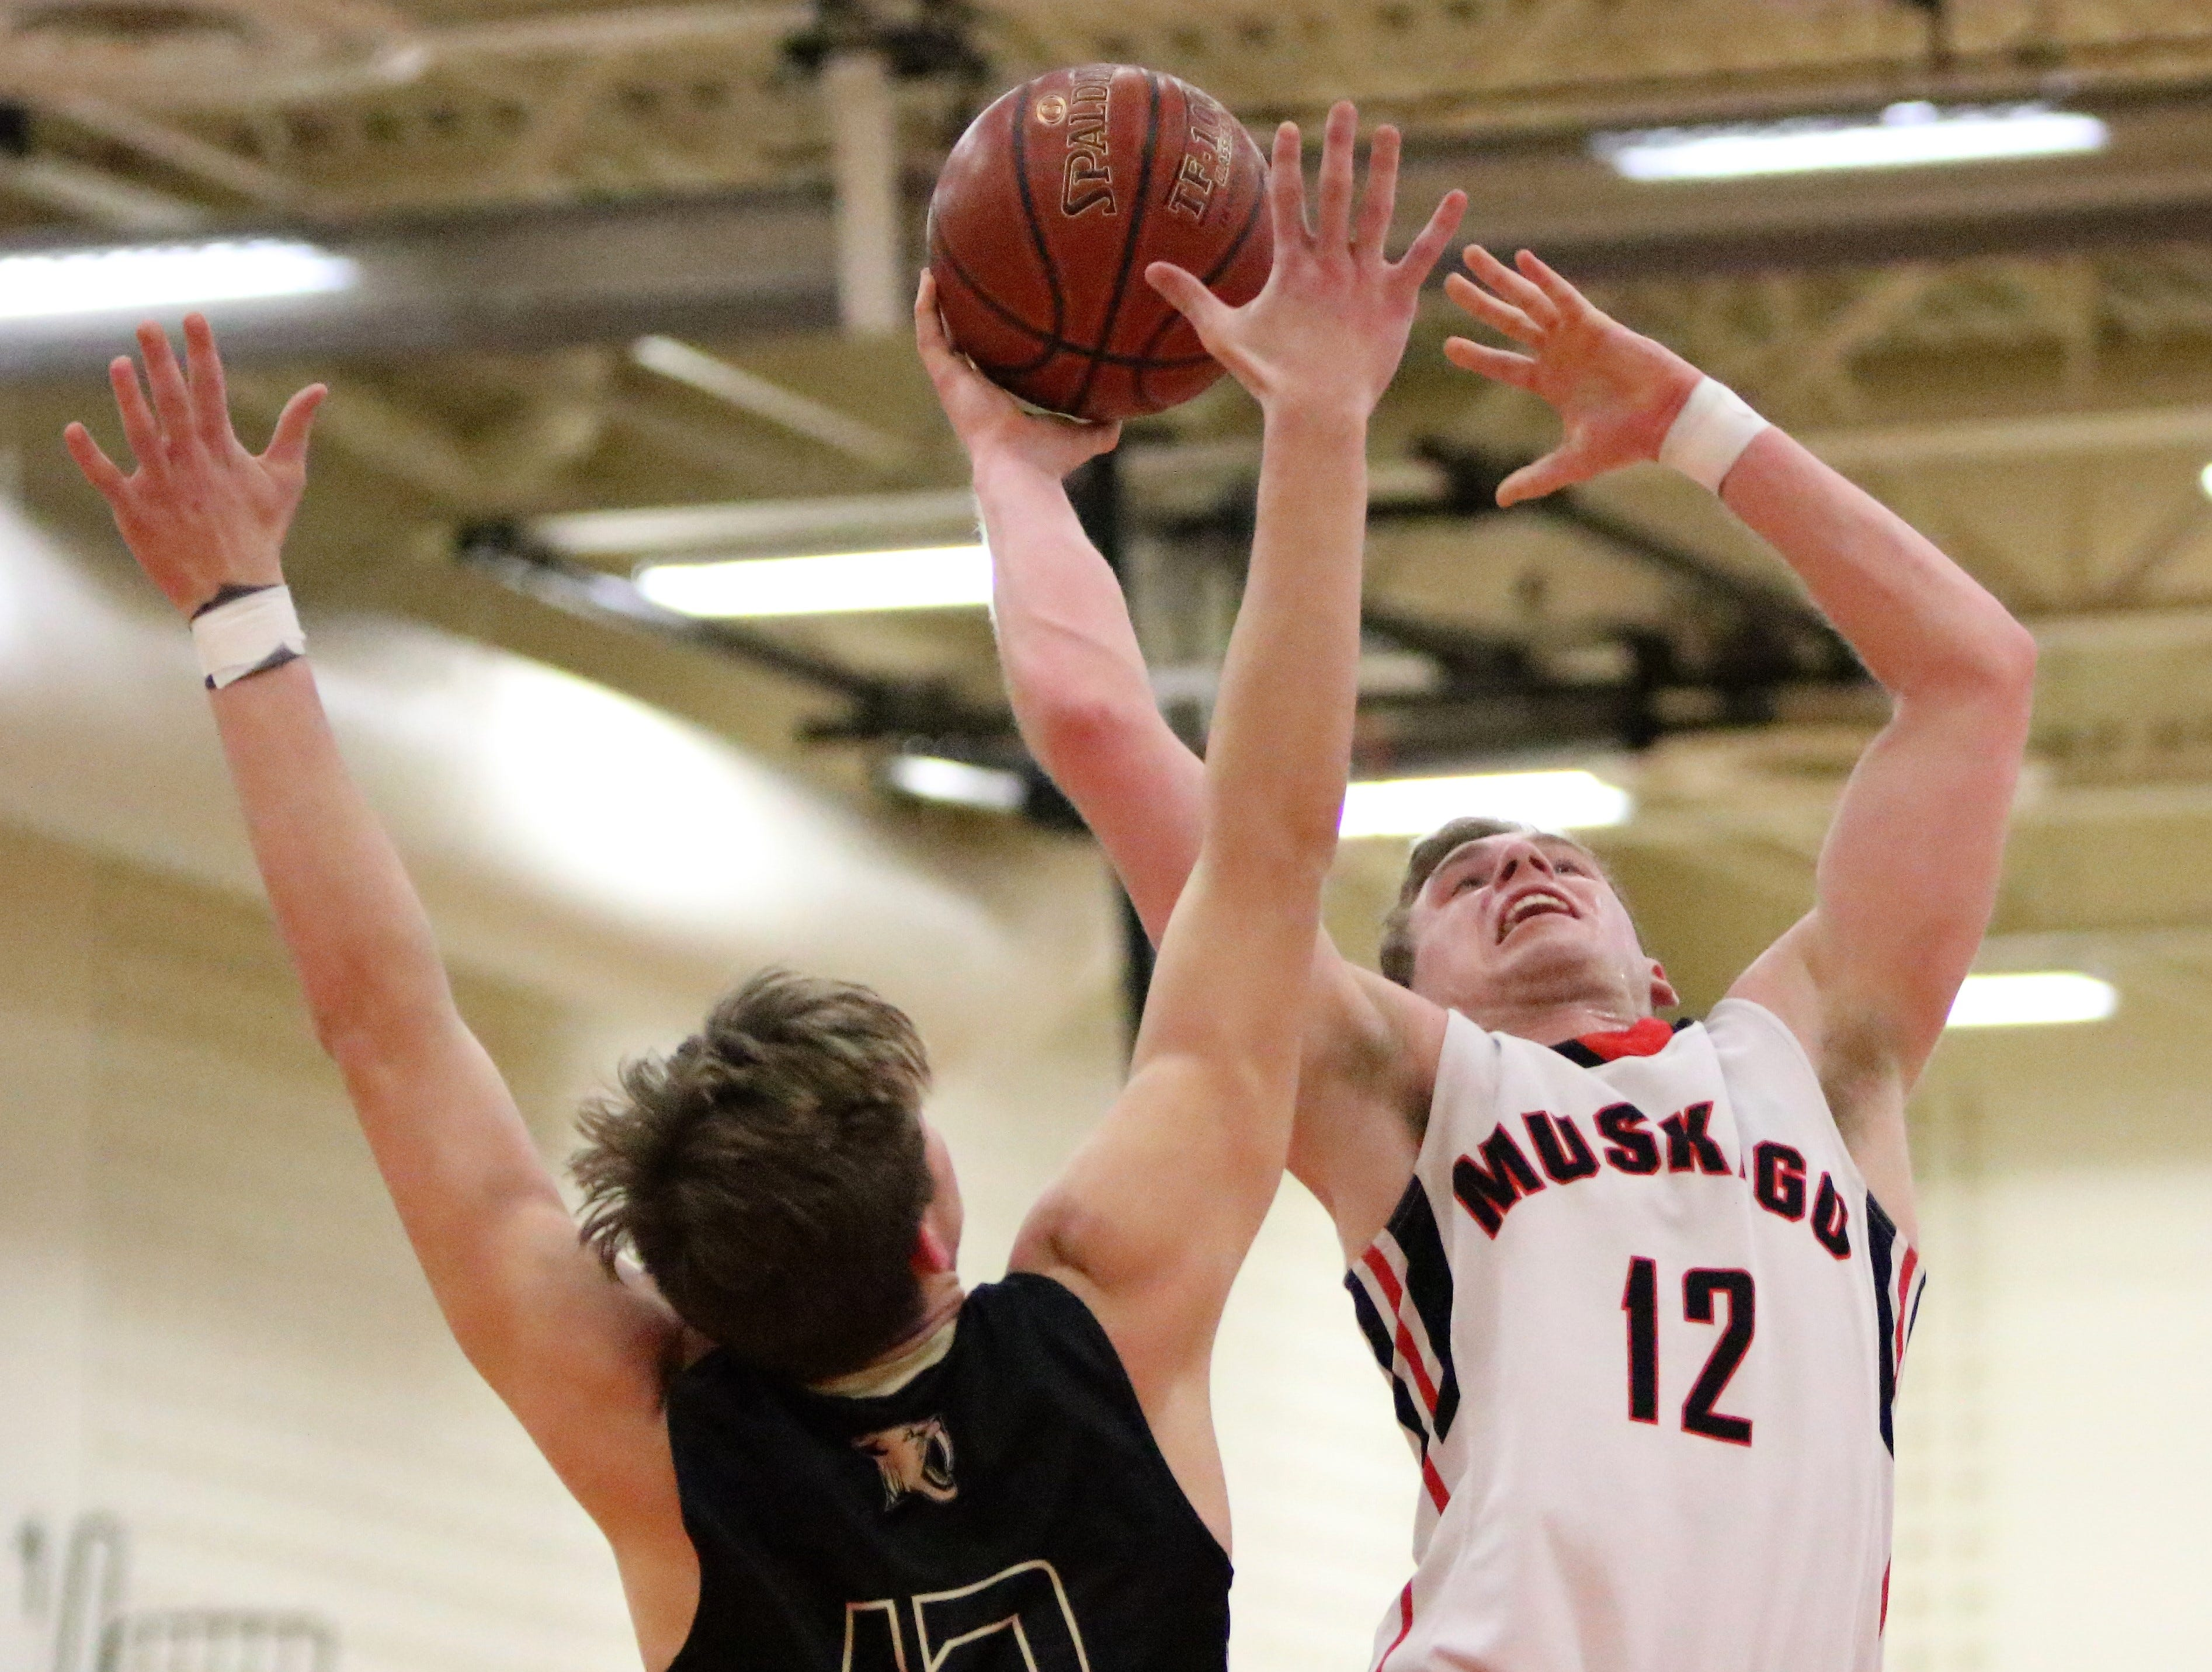 Muskego guard Austin Malkowski goes up for a layup against Franklin's Marko Rajkovic on Feb. 11, 2019.